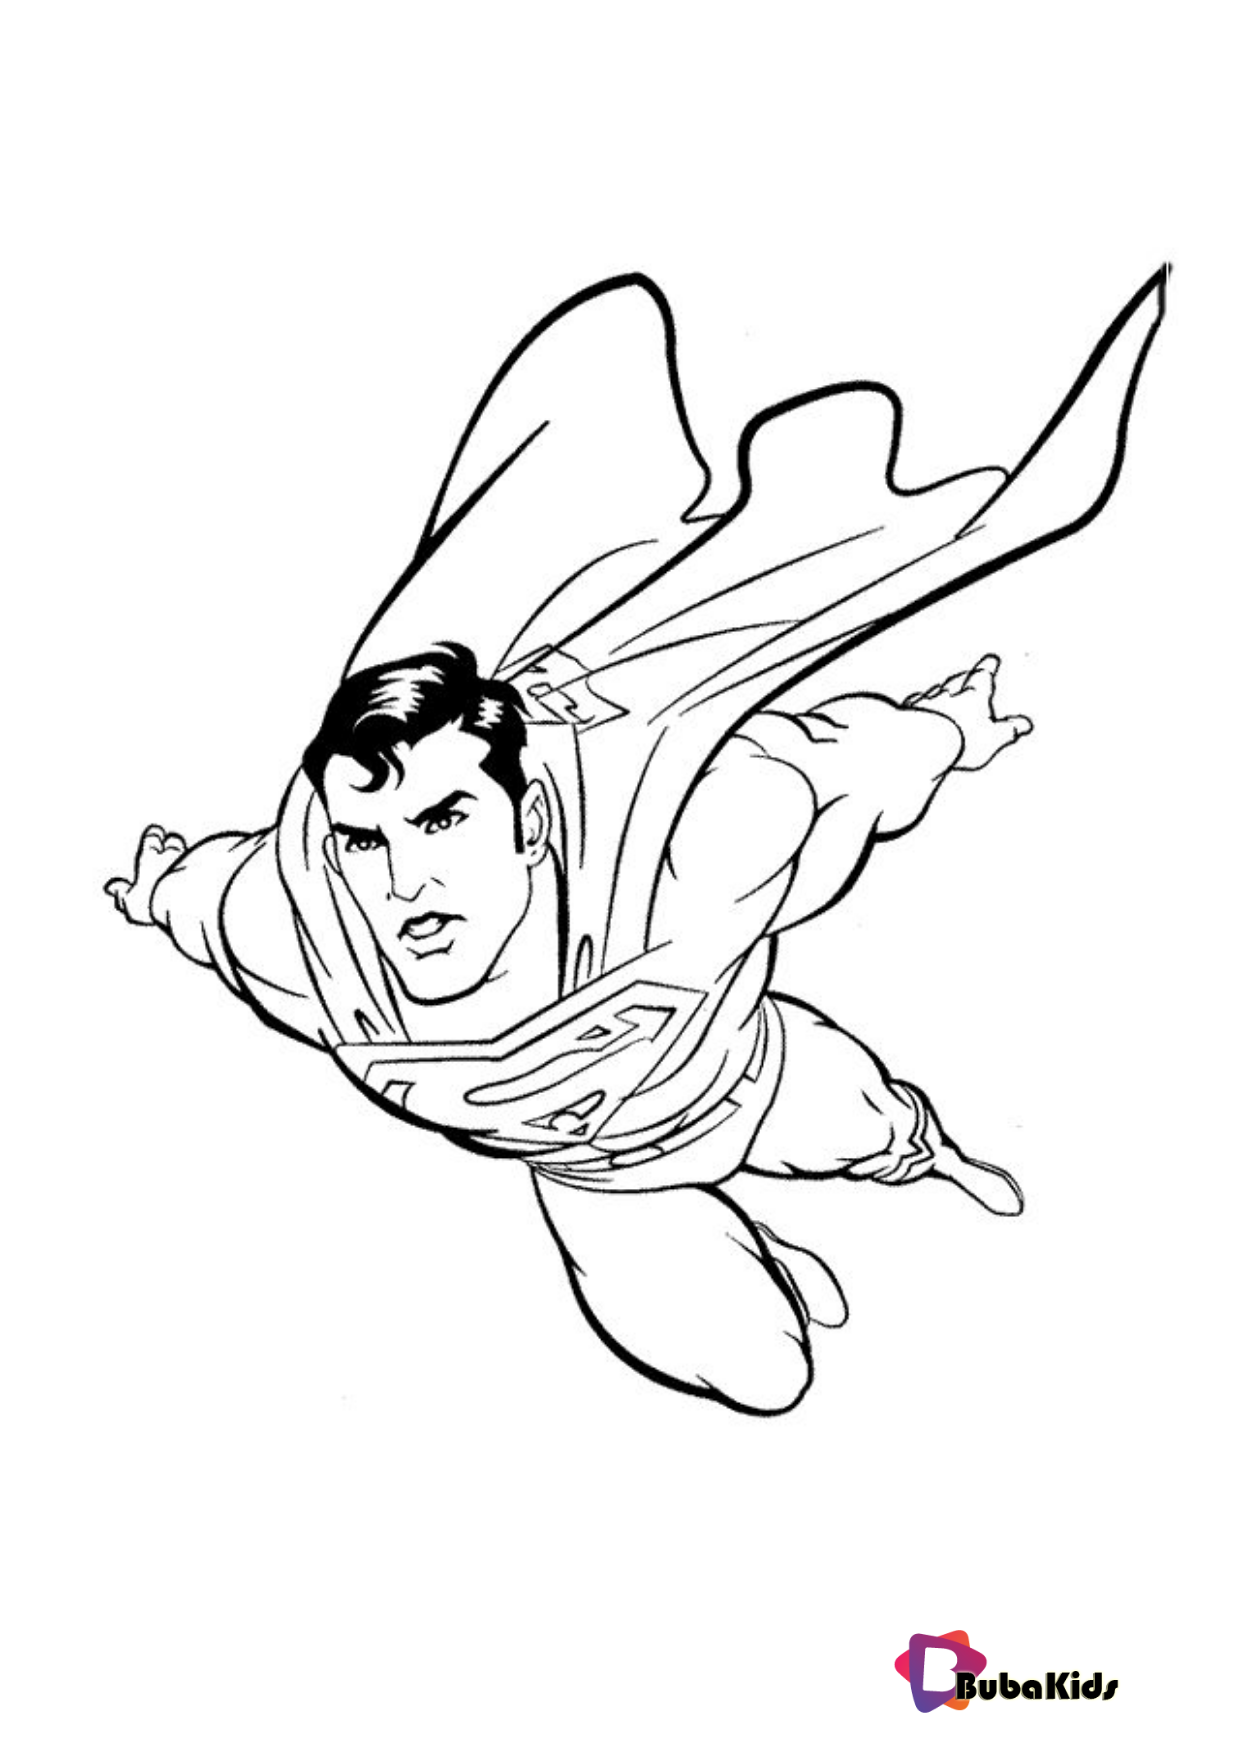 Superman Printable Coloring Pages On Bubakids Com Coloring Coloring Sheet Pages Su Superman Coloring Pages Avengers Coloring Pages Superhero Coloring Pages